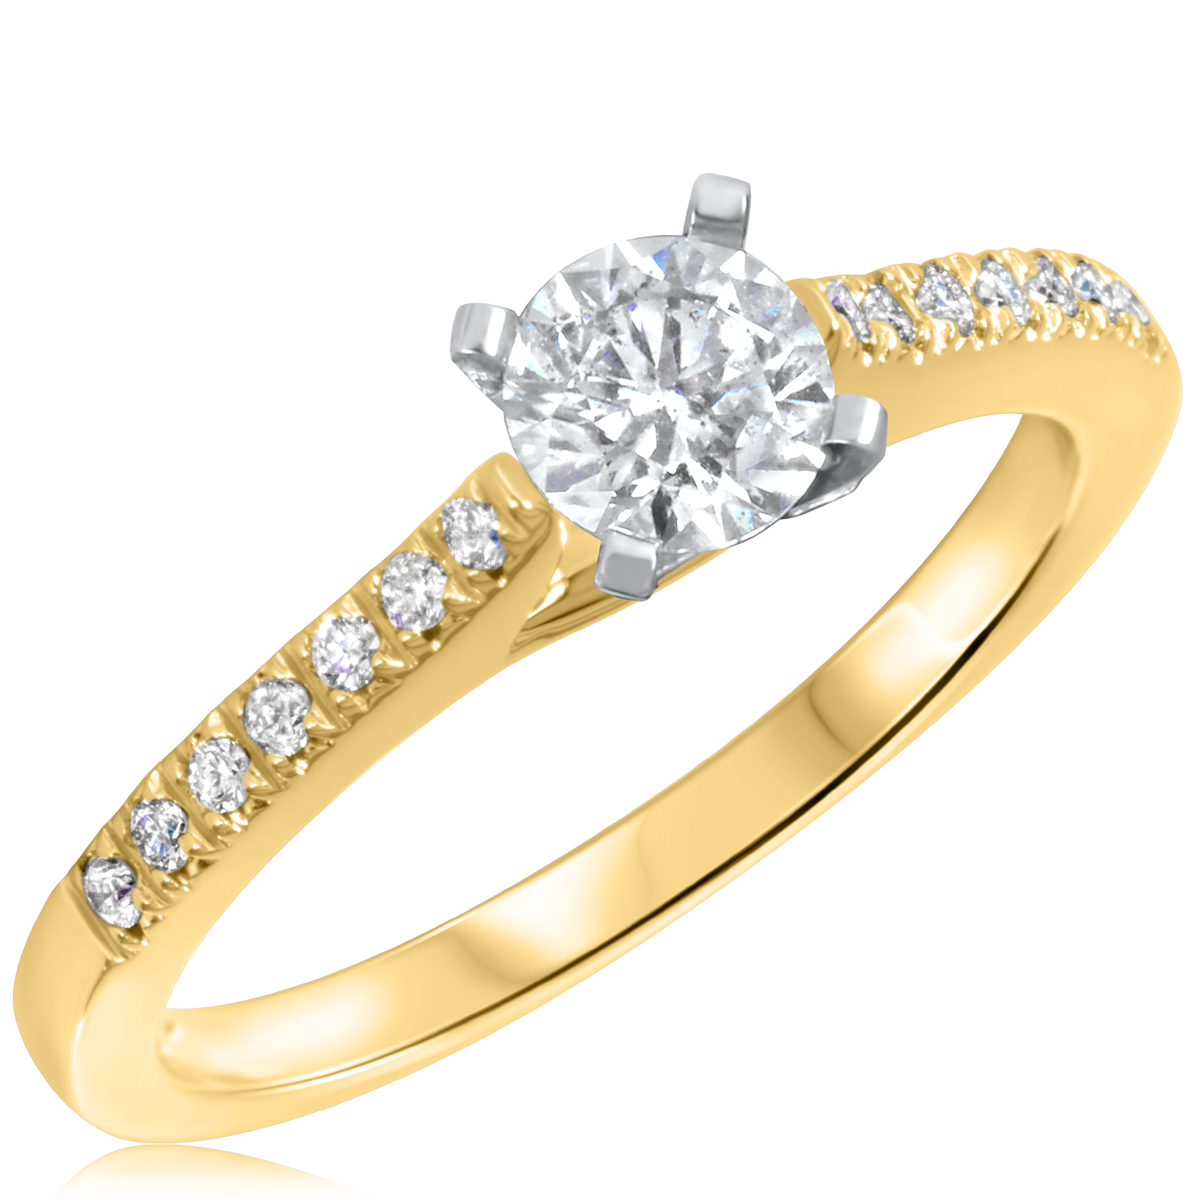 5/8 CT. T.W. Diamond Ladies Engagement Ring 10K Yellow Gold- Size 8